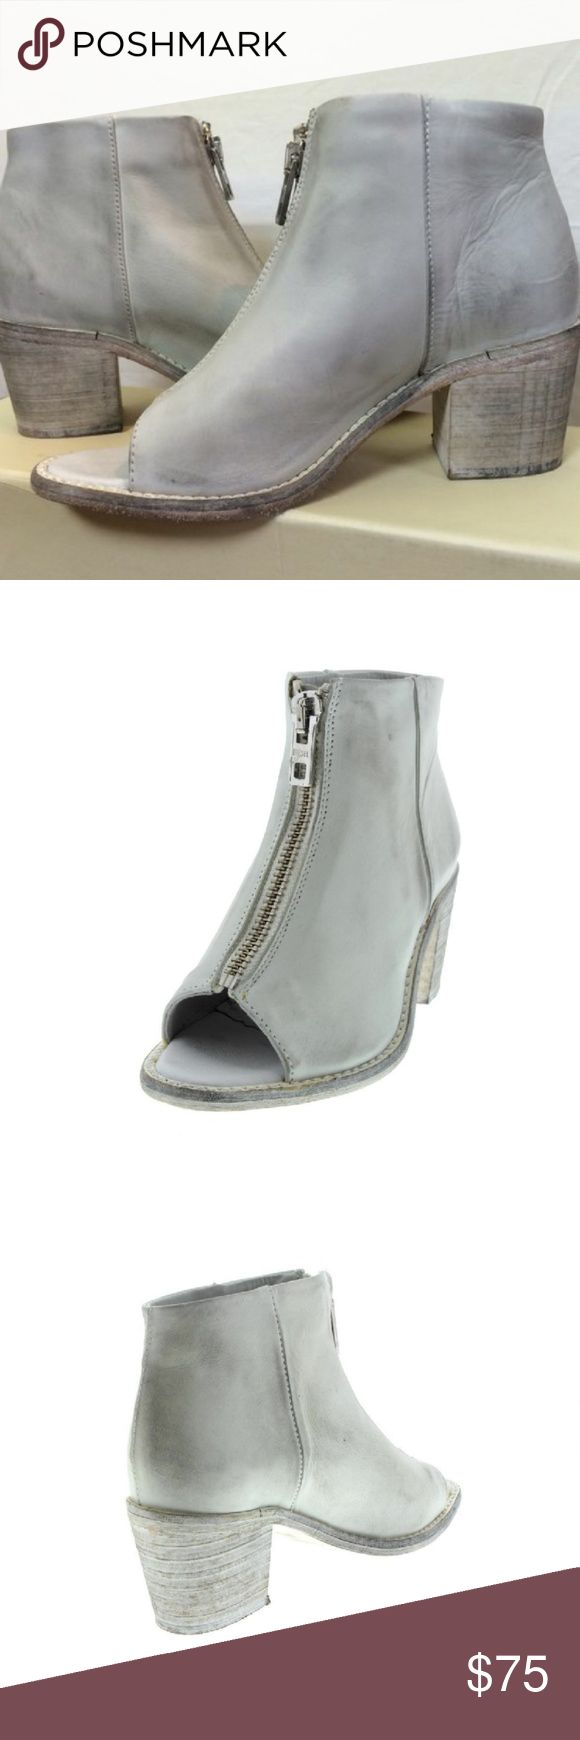 """DIESEL White Open Toe Zip Boots NIB $250 Stylish open-toe Diesel Shoe Boots (Shooties) Heel Height: 2 3/4"""" Platform Height: 1/4"""" Shaft Height: 5"""" Shaft Width: 10"""" Front Zipper Closure All Leather Construction (Uppers & Sole) Fit True To Size. Size: 7.5 NIB $250  Buy 3 or More Items and Get 20% OFF Your Purchase :) ENJOY!!! Diesel Shoes Ankle Boots & Booties"""